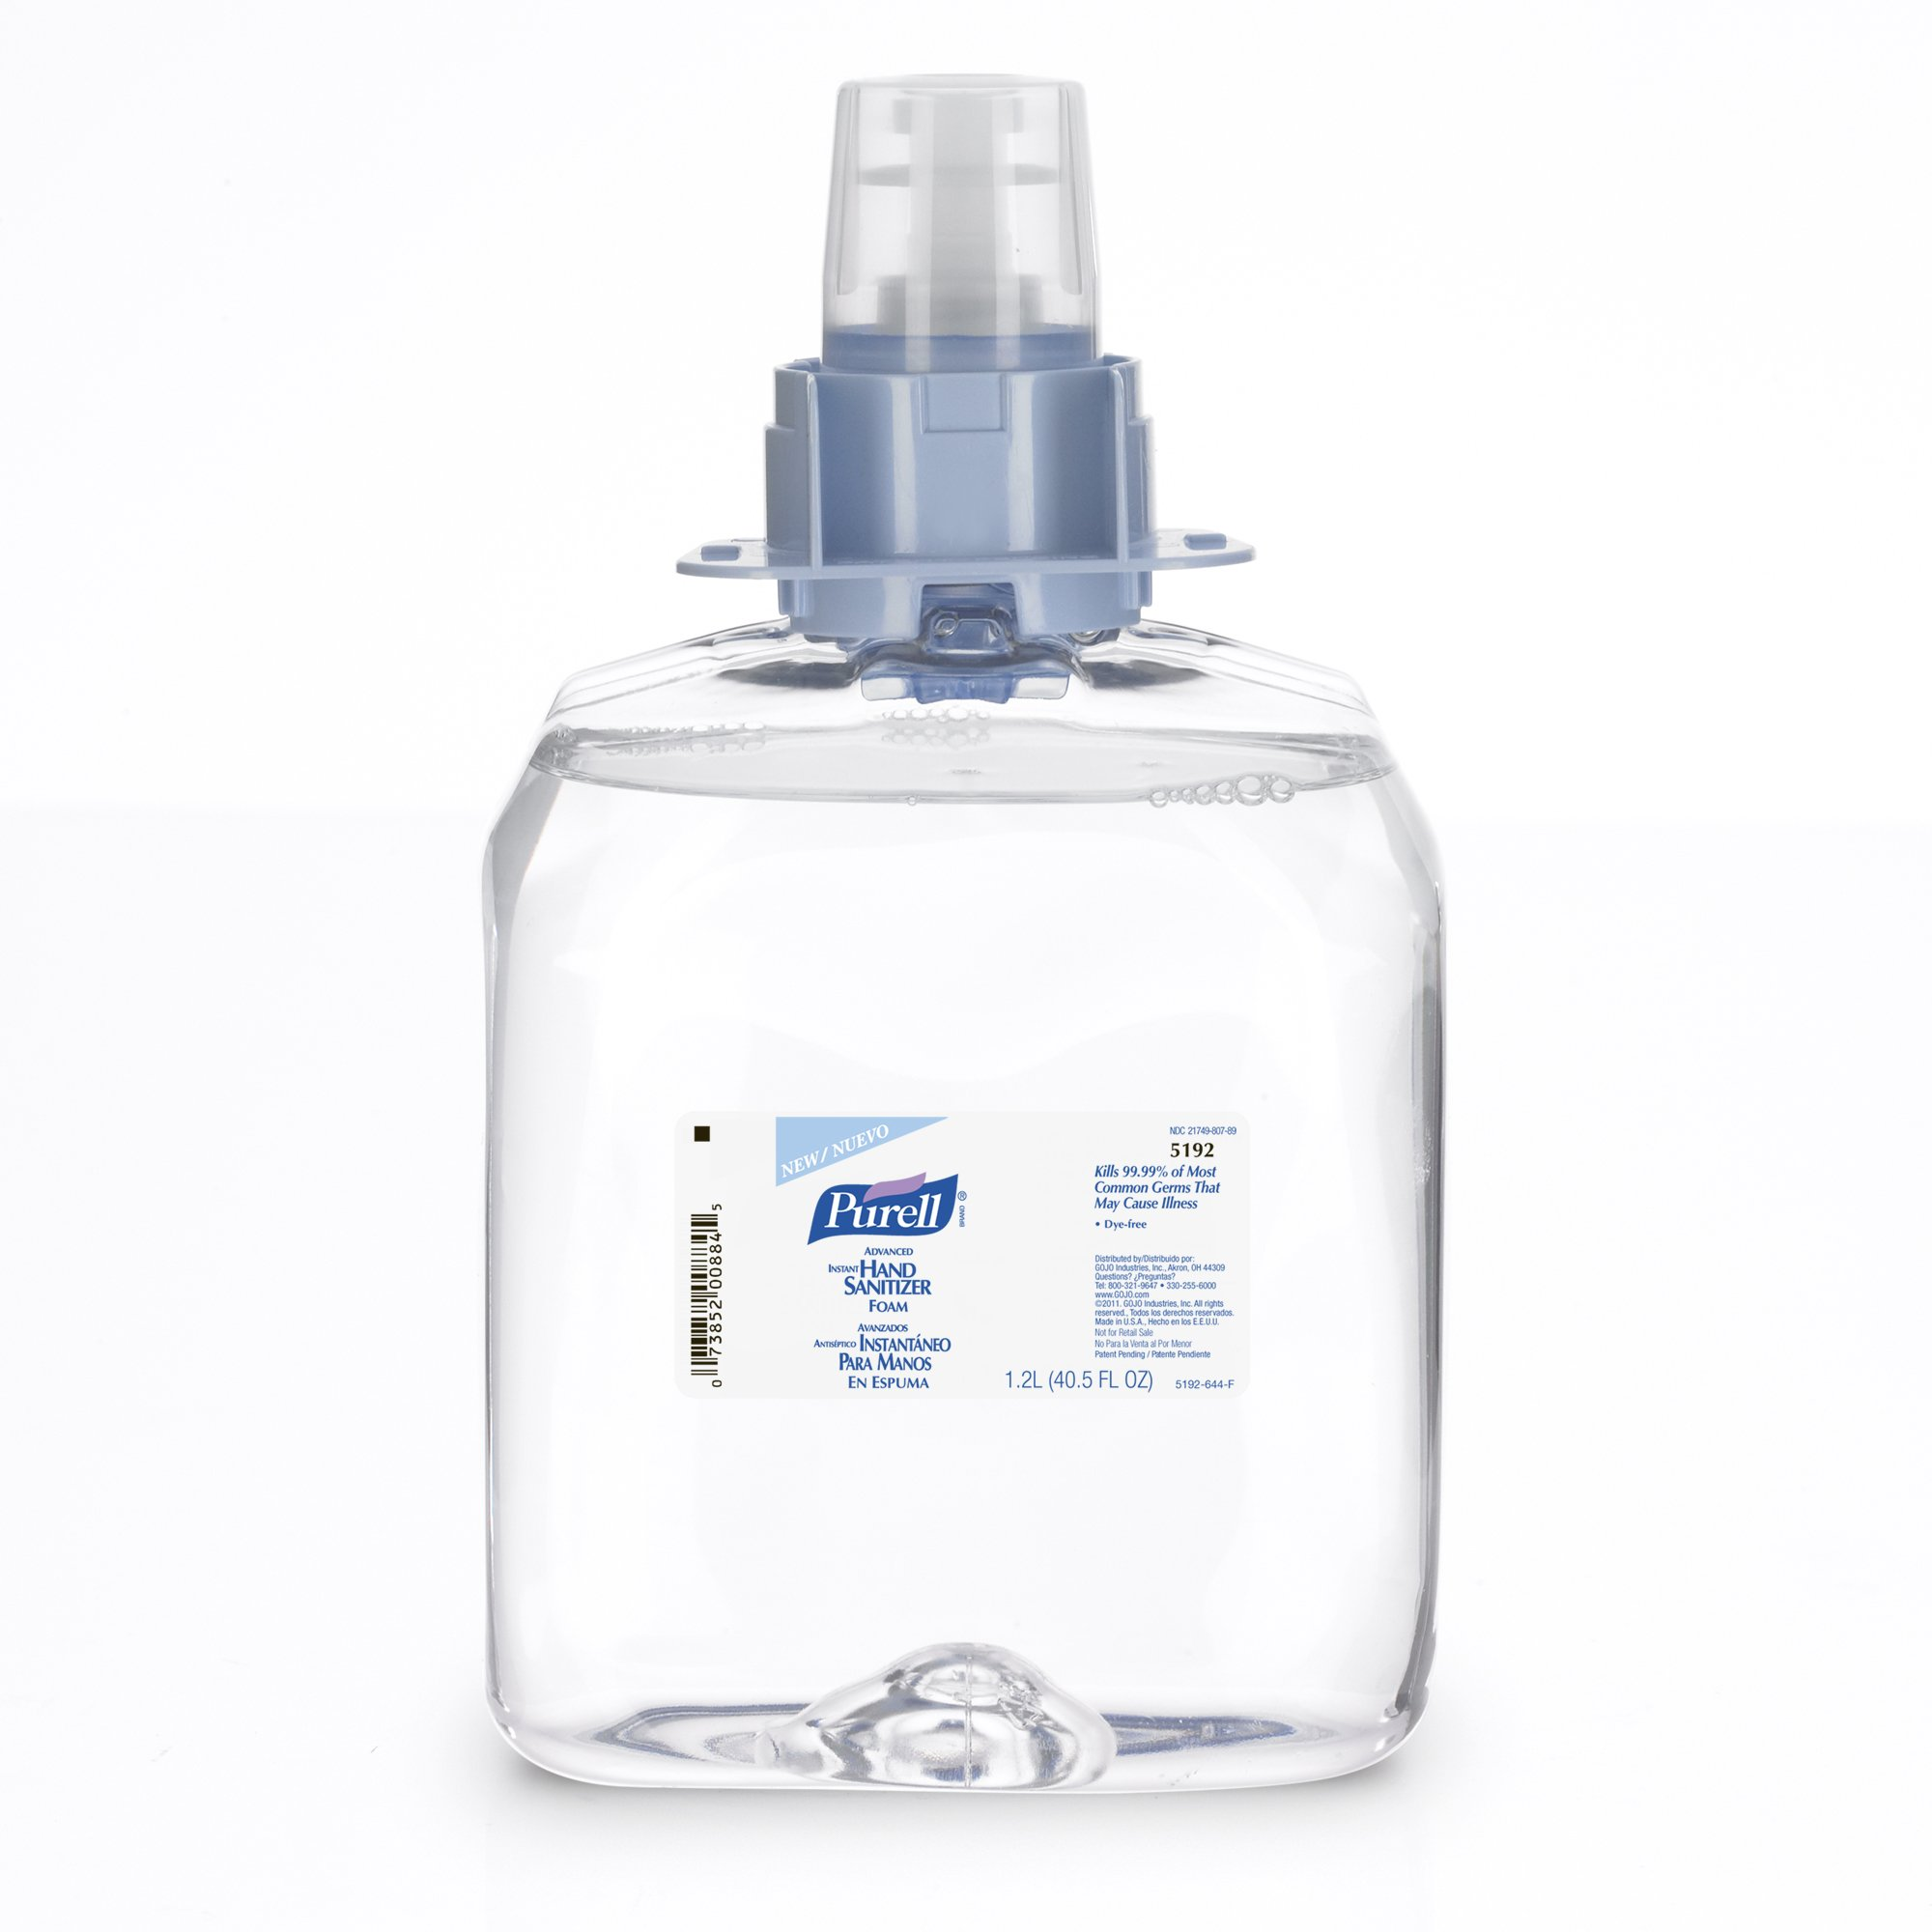 PURELL 5192-03 Advanced Instant Hand Sanitizer Foam, 1,200 mL FMX-12 Refill (Pack of 3)